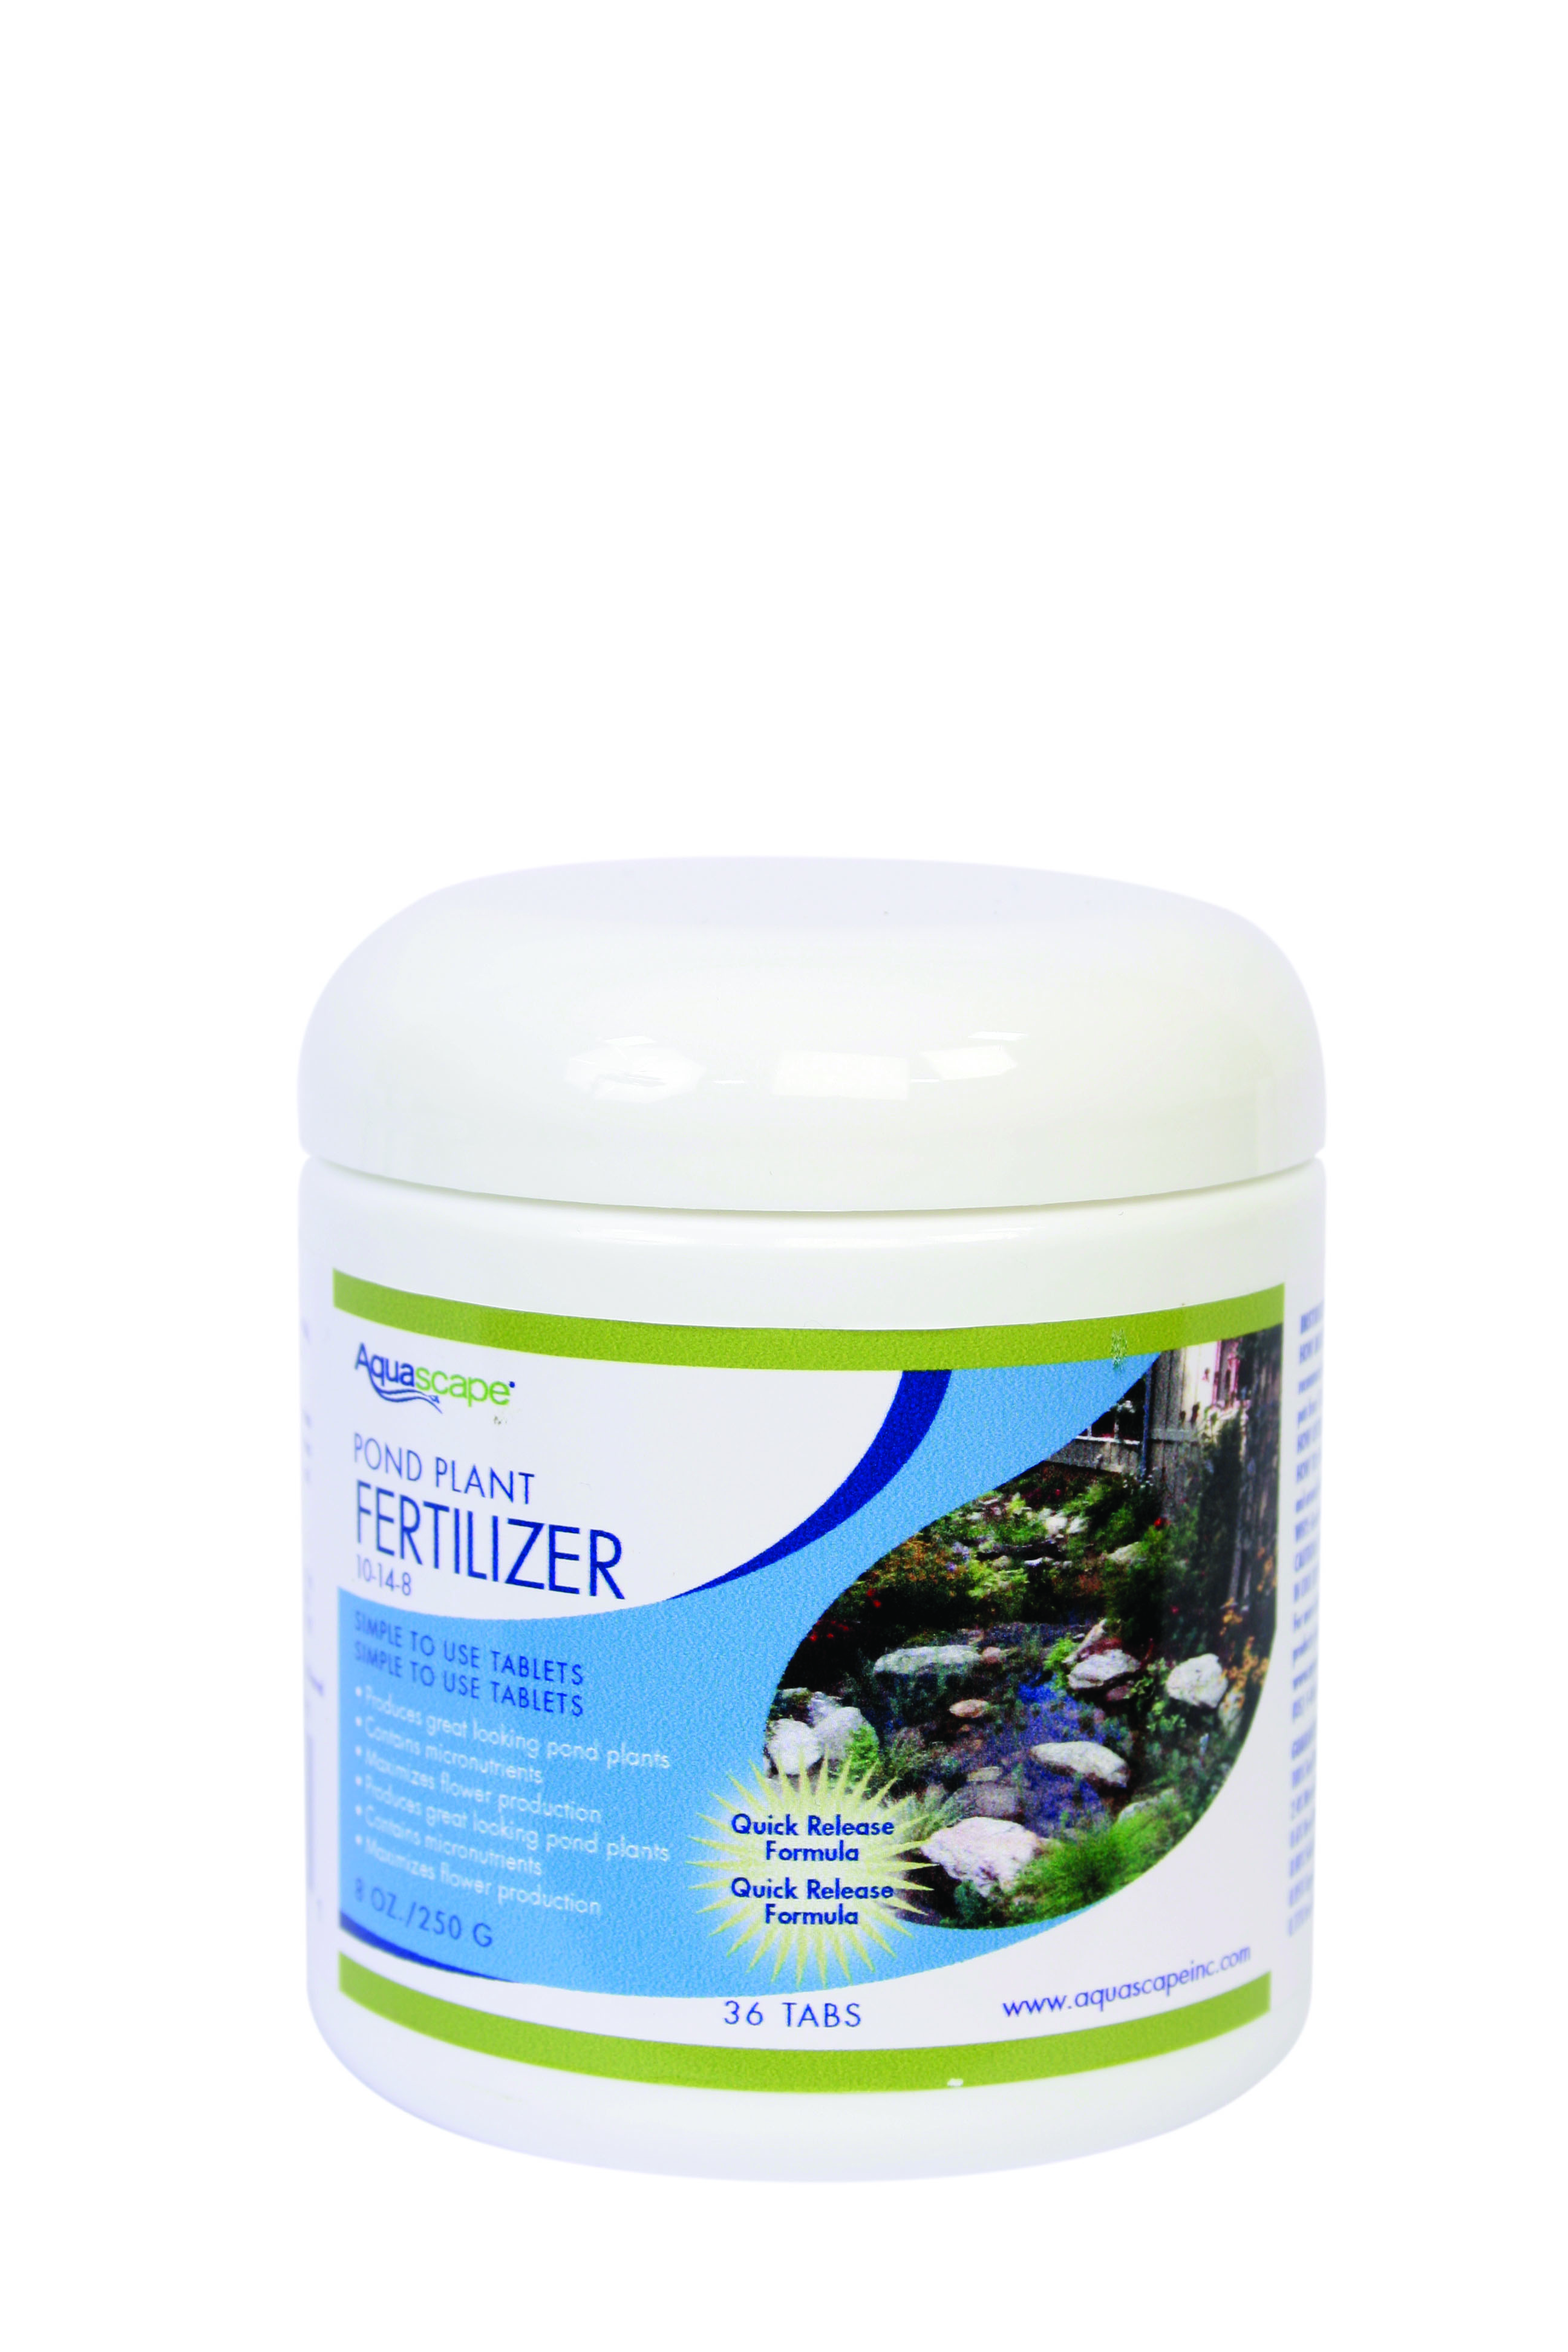 Aquascape Pond Plant Fertilizer Quick Release Nutrients